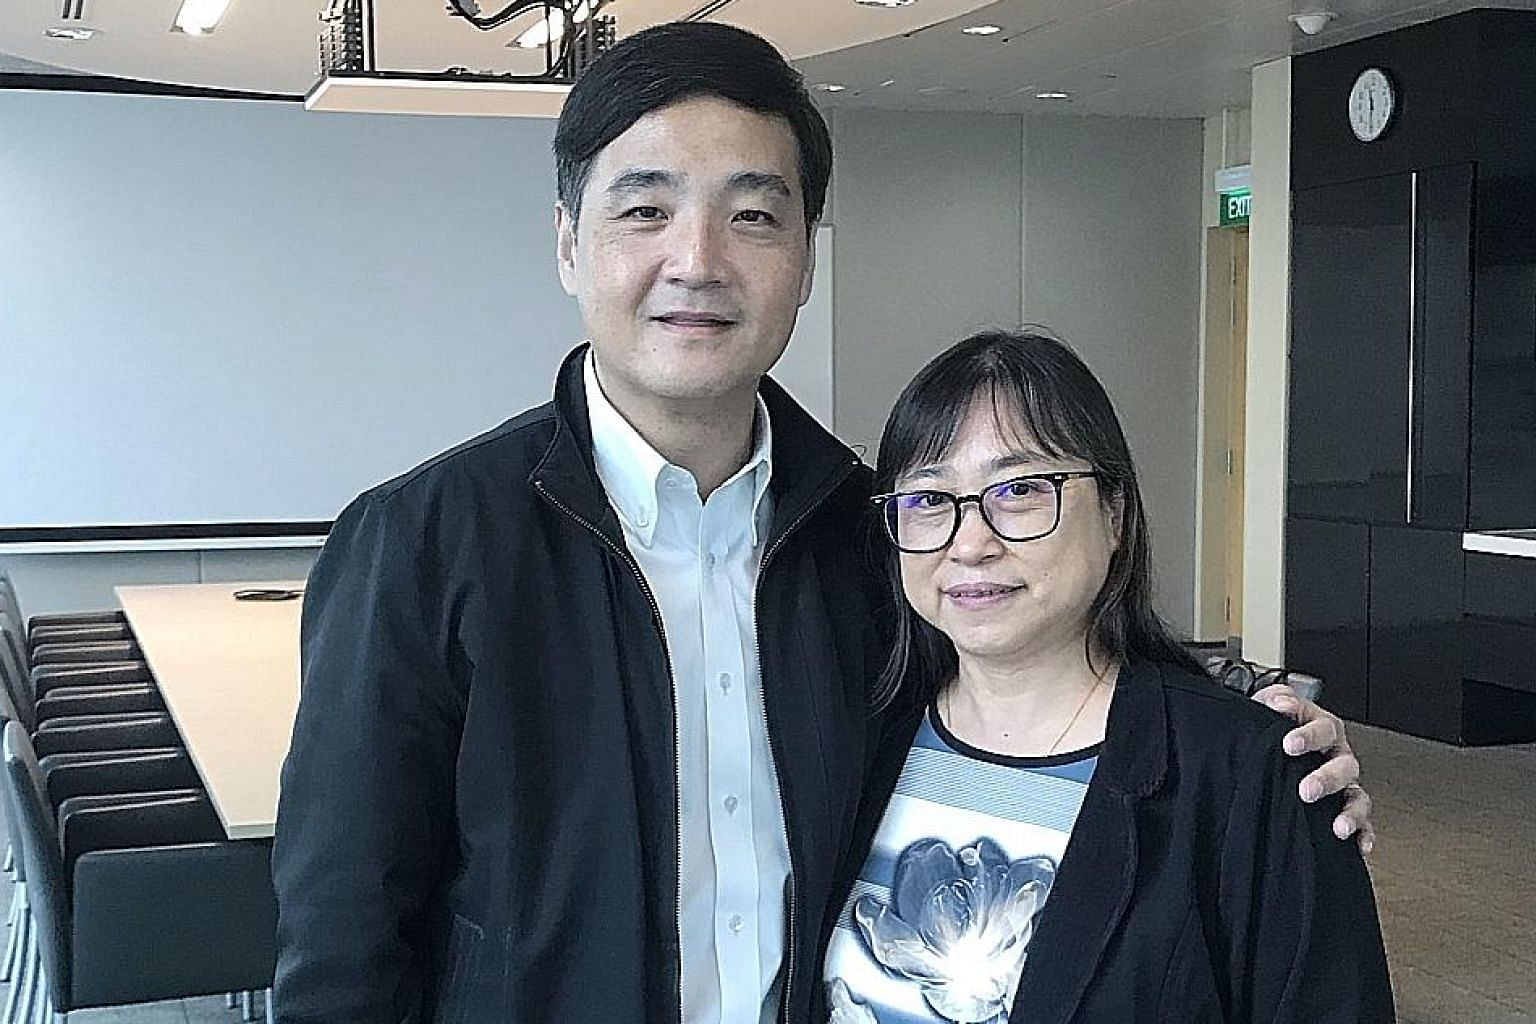 NTUC deputy secretary-general Heng Chee How with Ms Koh Leh Choo, who is now a part-time homecare nurse with NTUC Health. Ms Koh had to resign from her full-time job to care for her father in 2017.